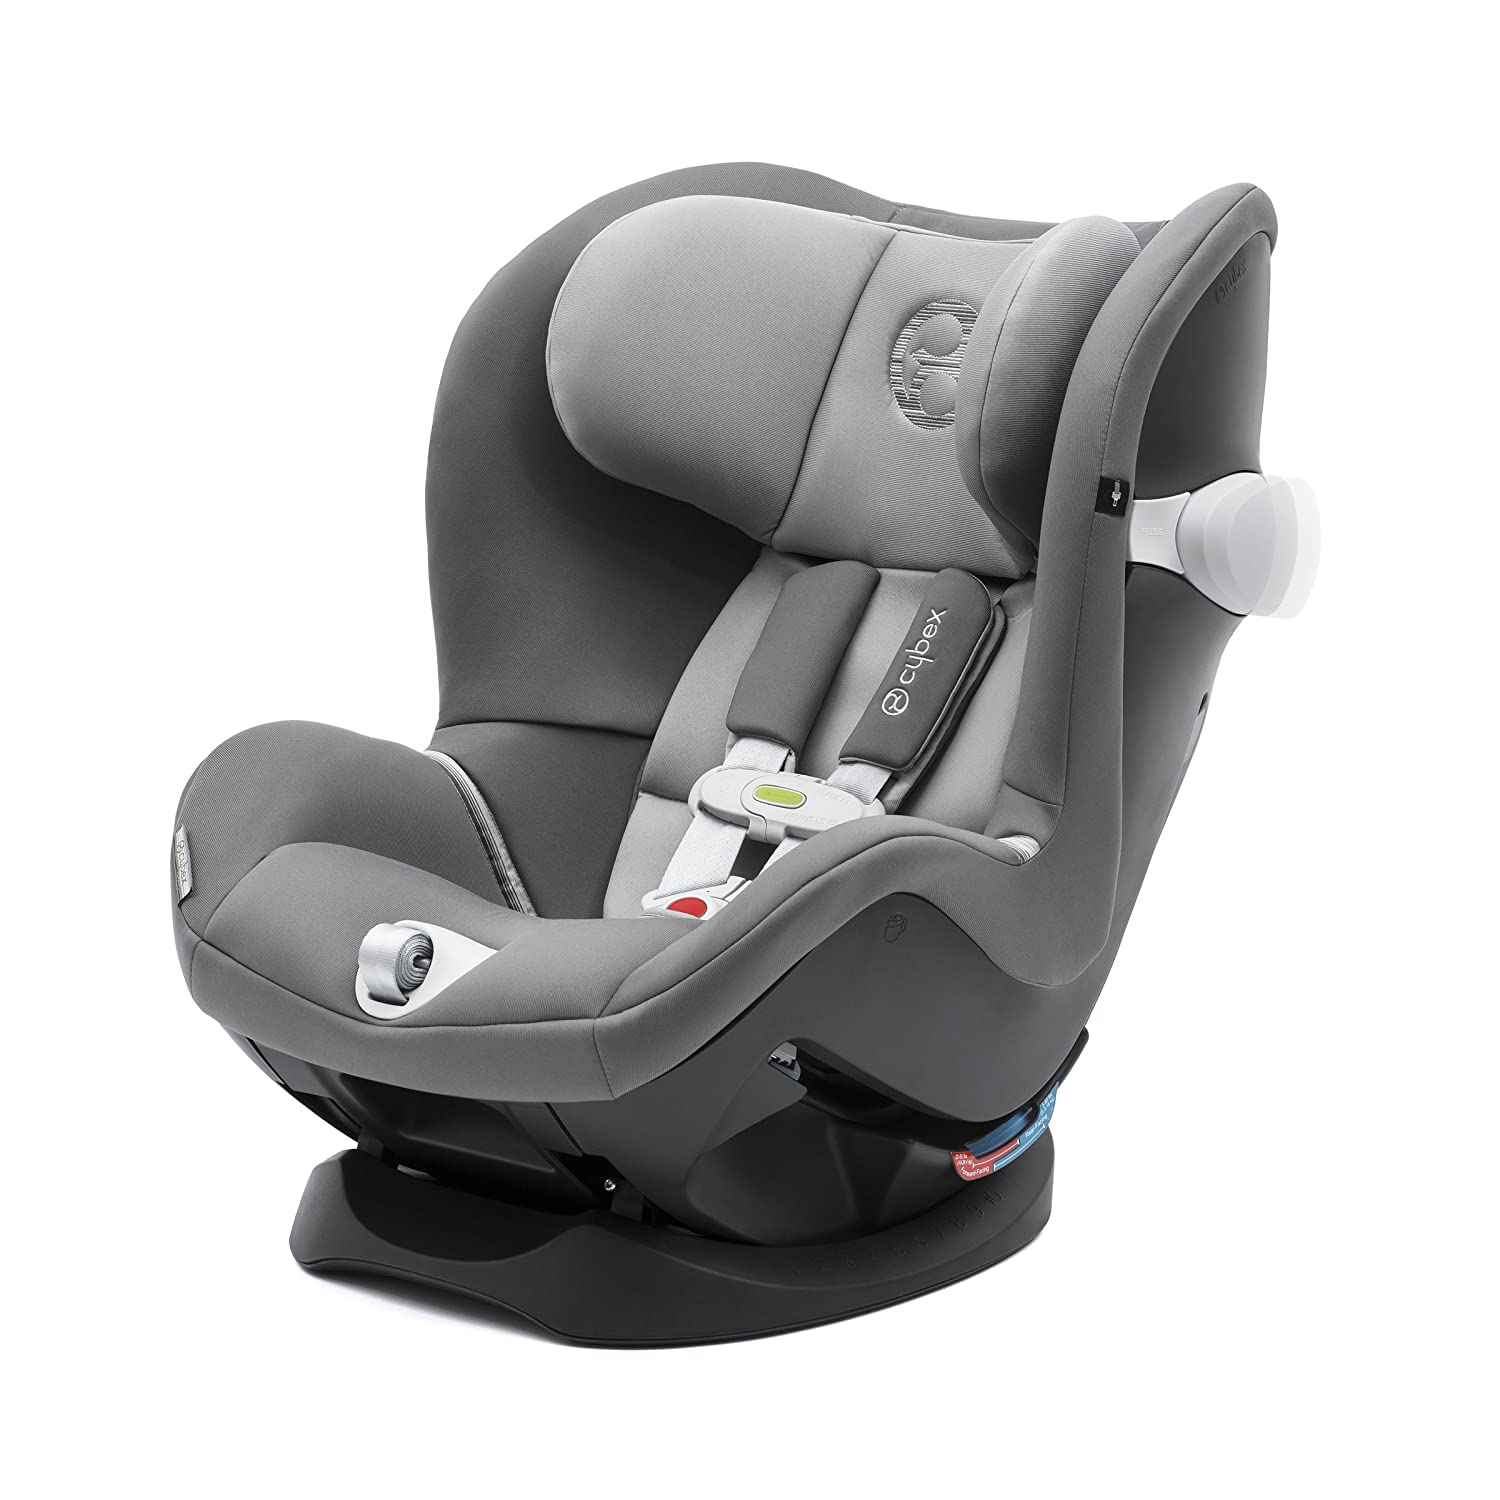 CYBEX Sirona M SensorSafe 2.0, Manhattan Grey,Car Seat 518002151